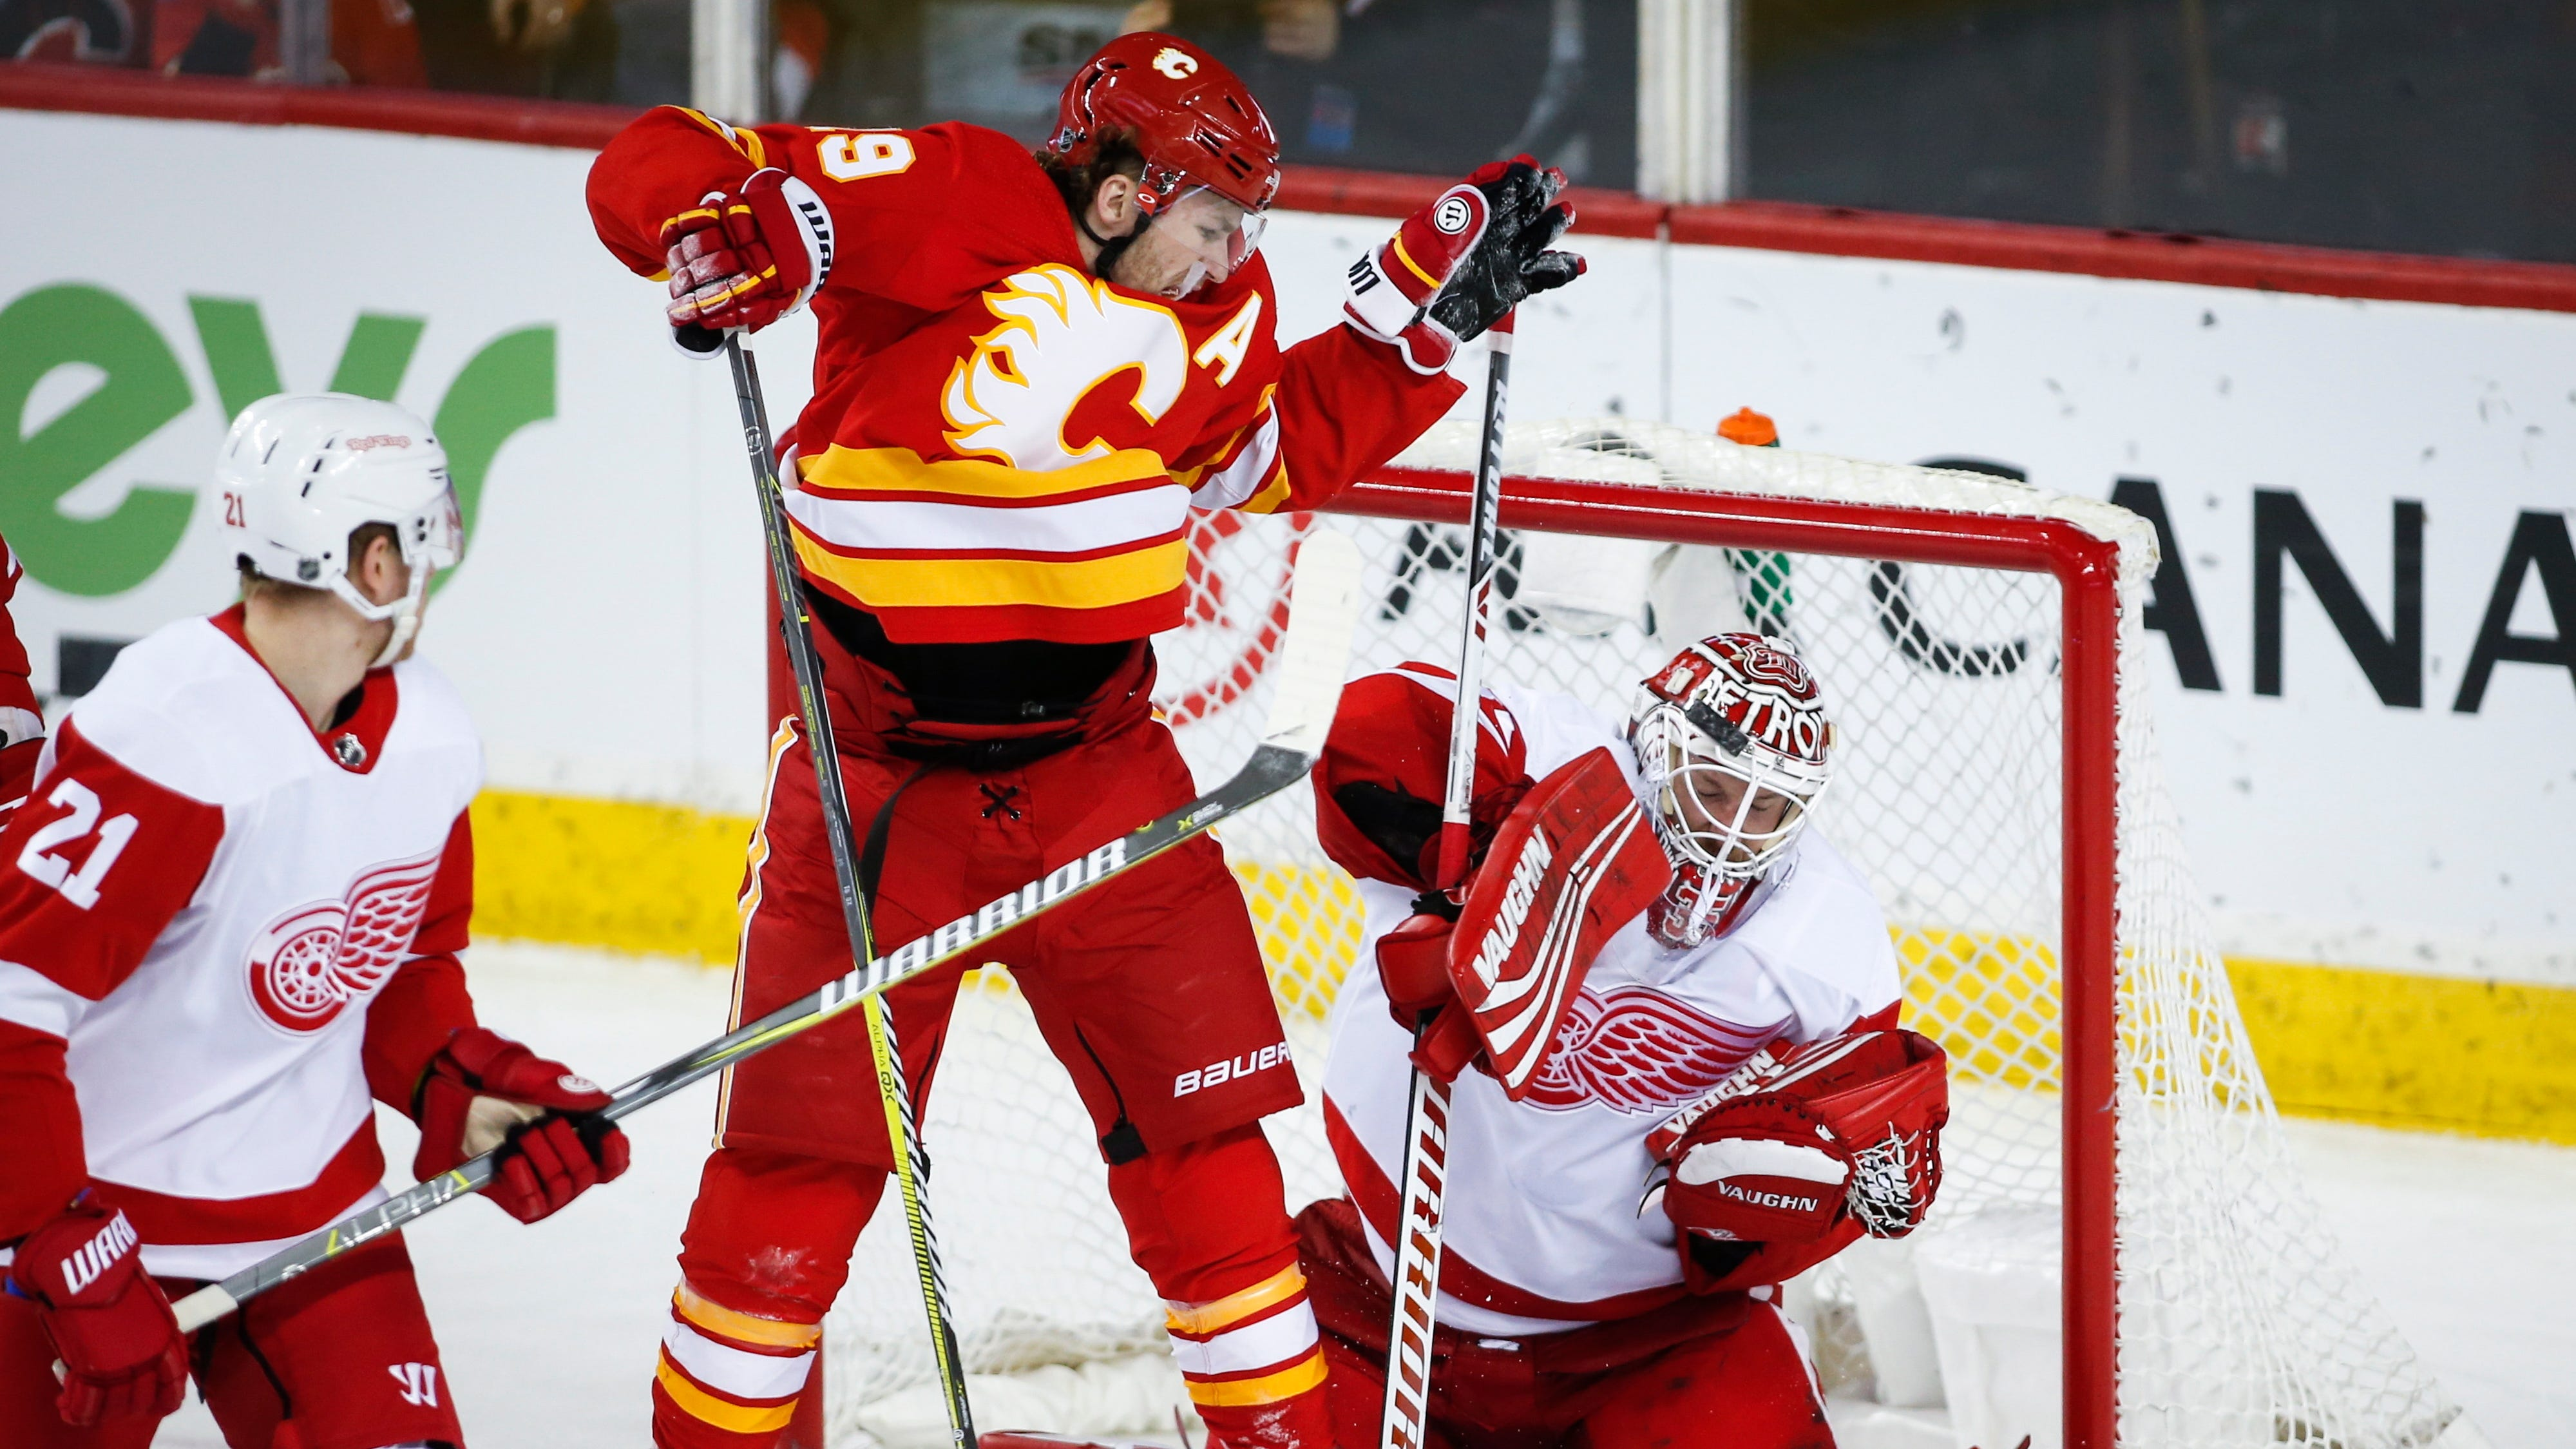 Flames overtake Red Wings in old-fashioned shootout